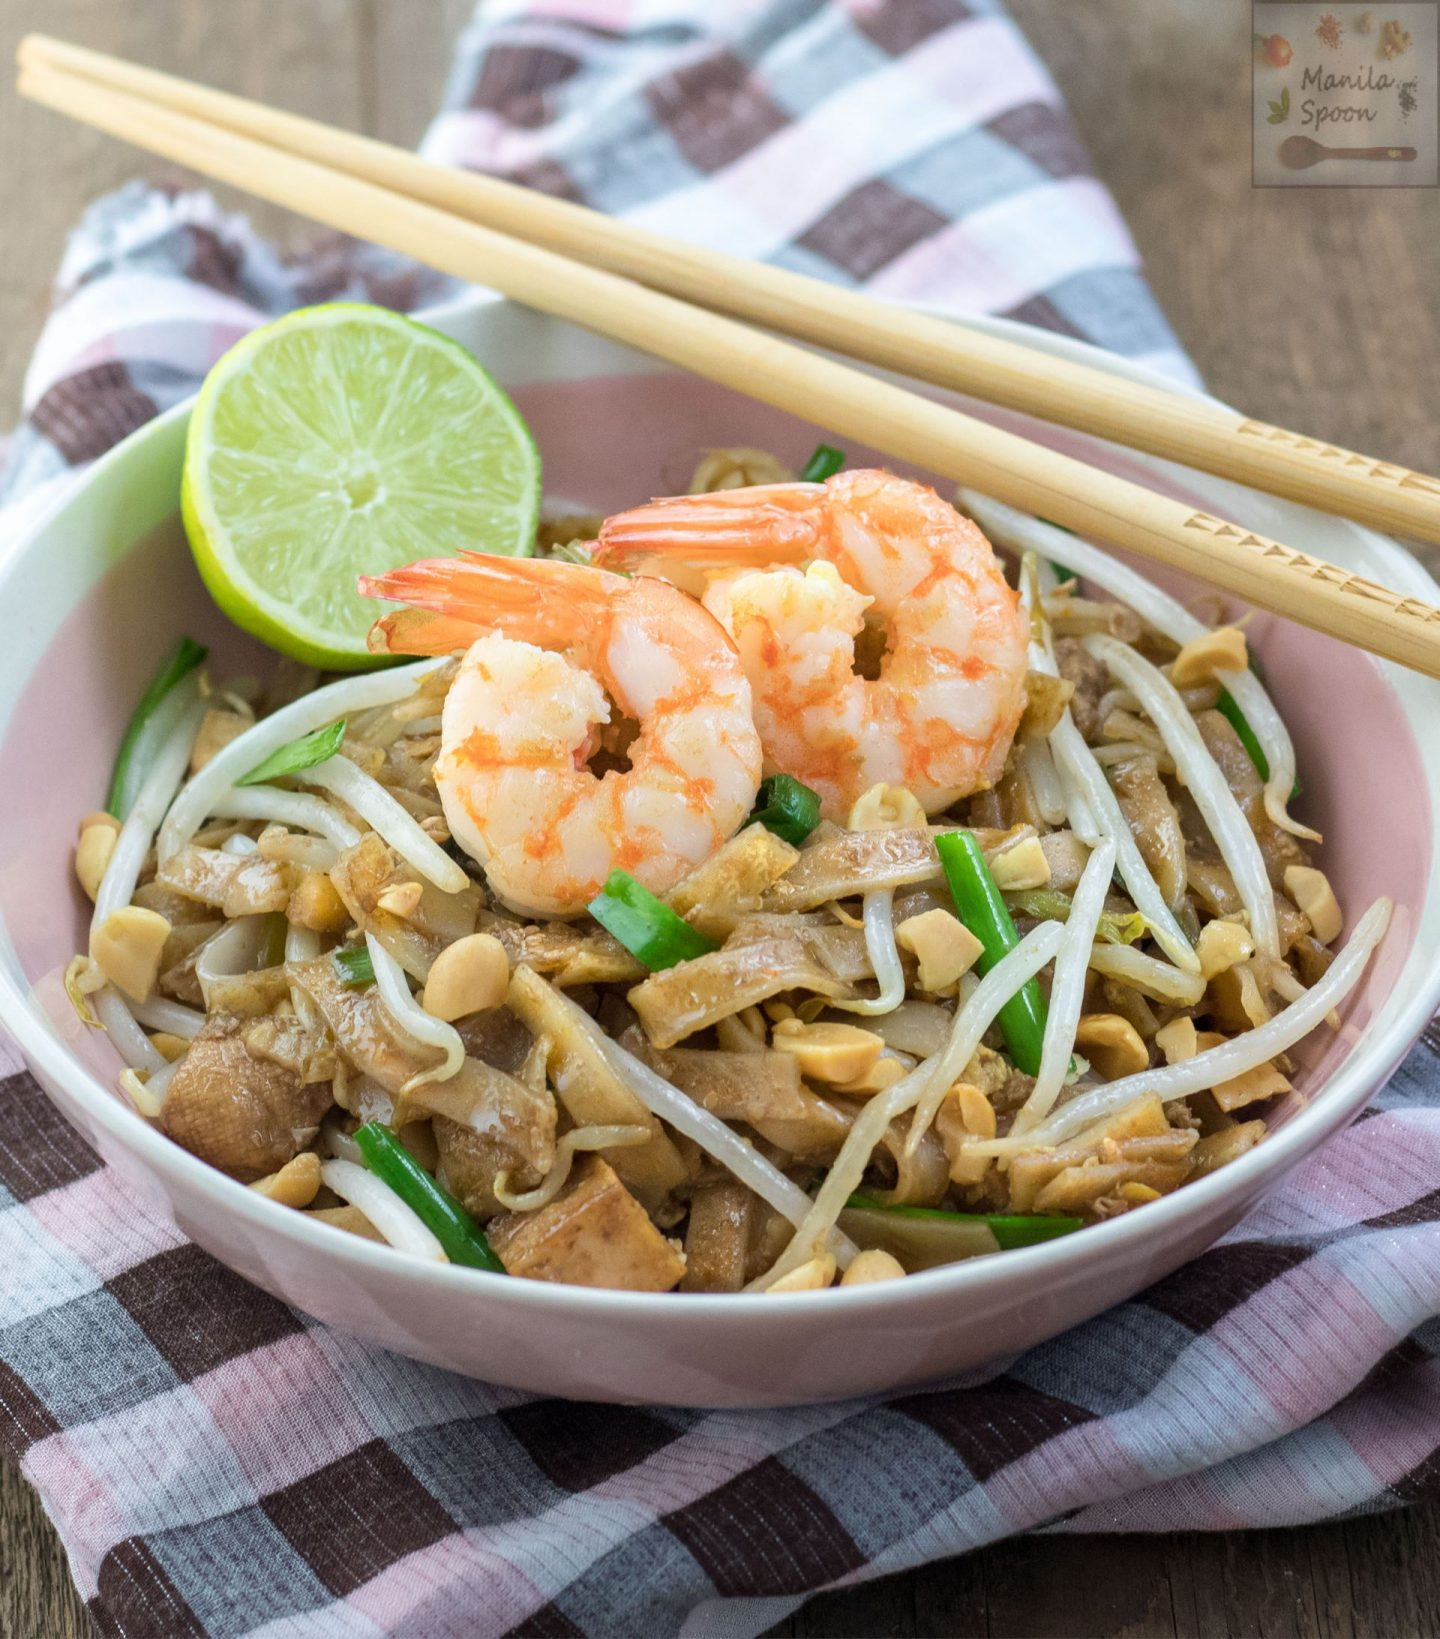 How To Make Pad Thai Manila Spoon